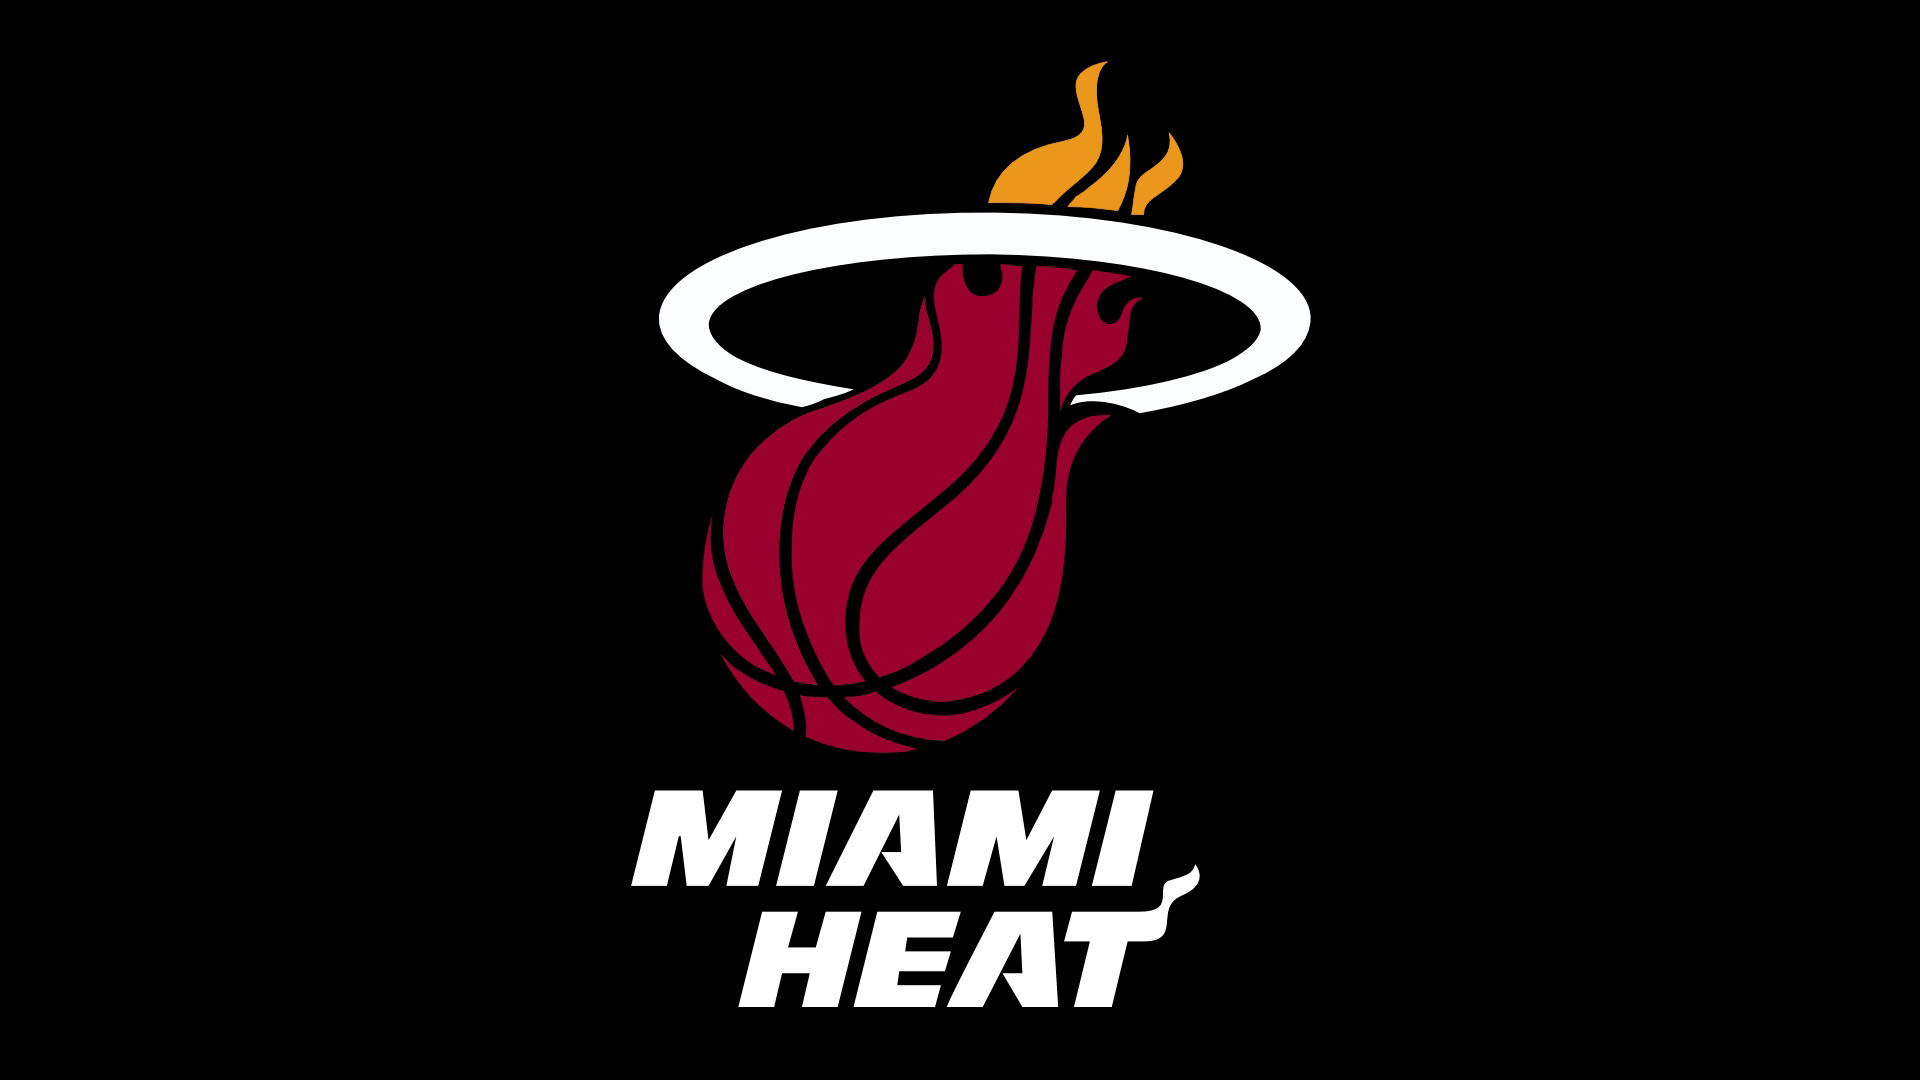 Daisyamongdaisies Miami Heat Logo Art Wallpaper Images 1920x1080